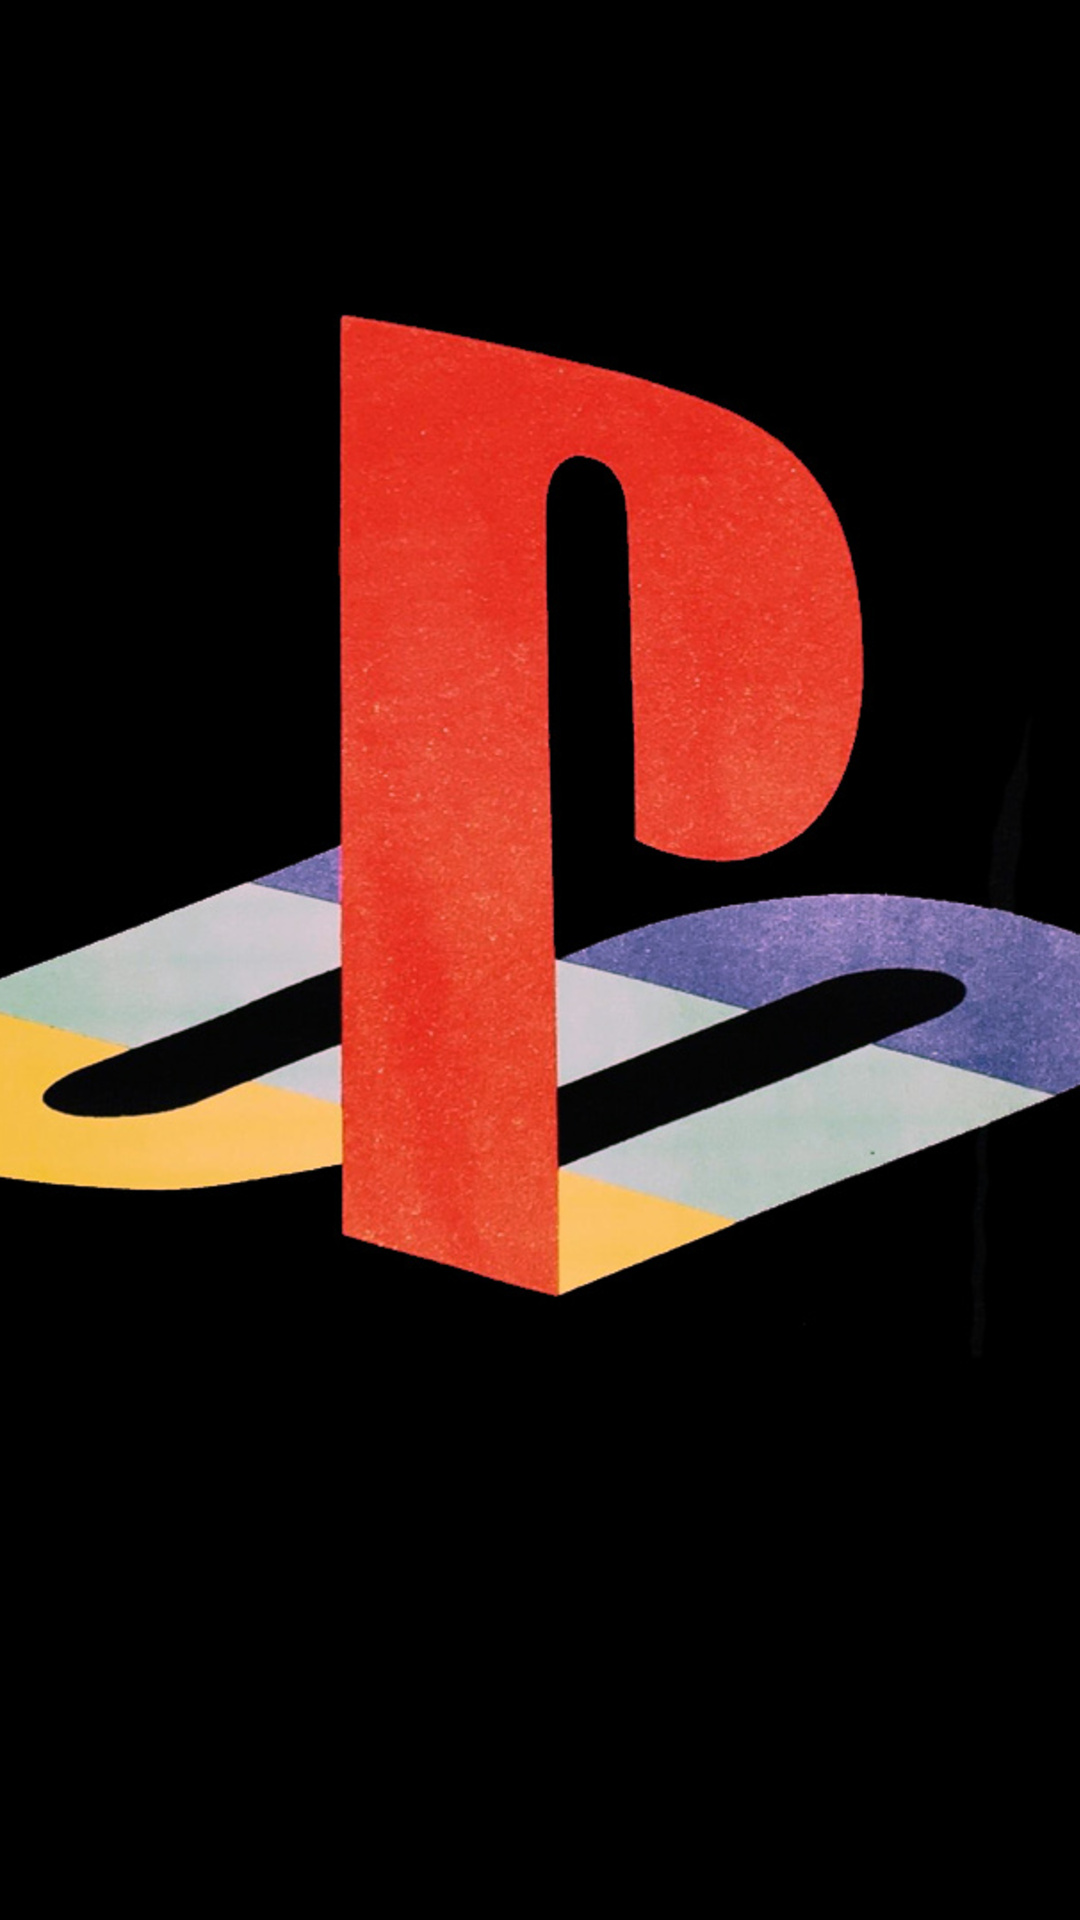 1080x1920 playstation logo iphone 7,6s,6 plus, pixel xl ,one plus 3